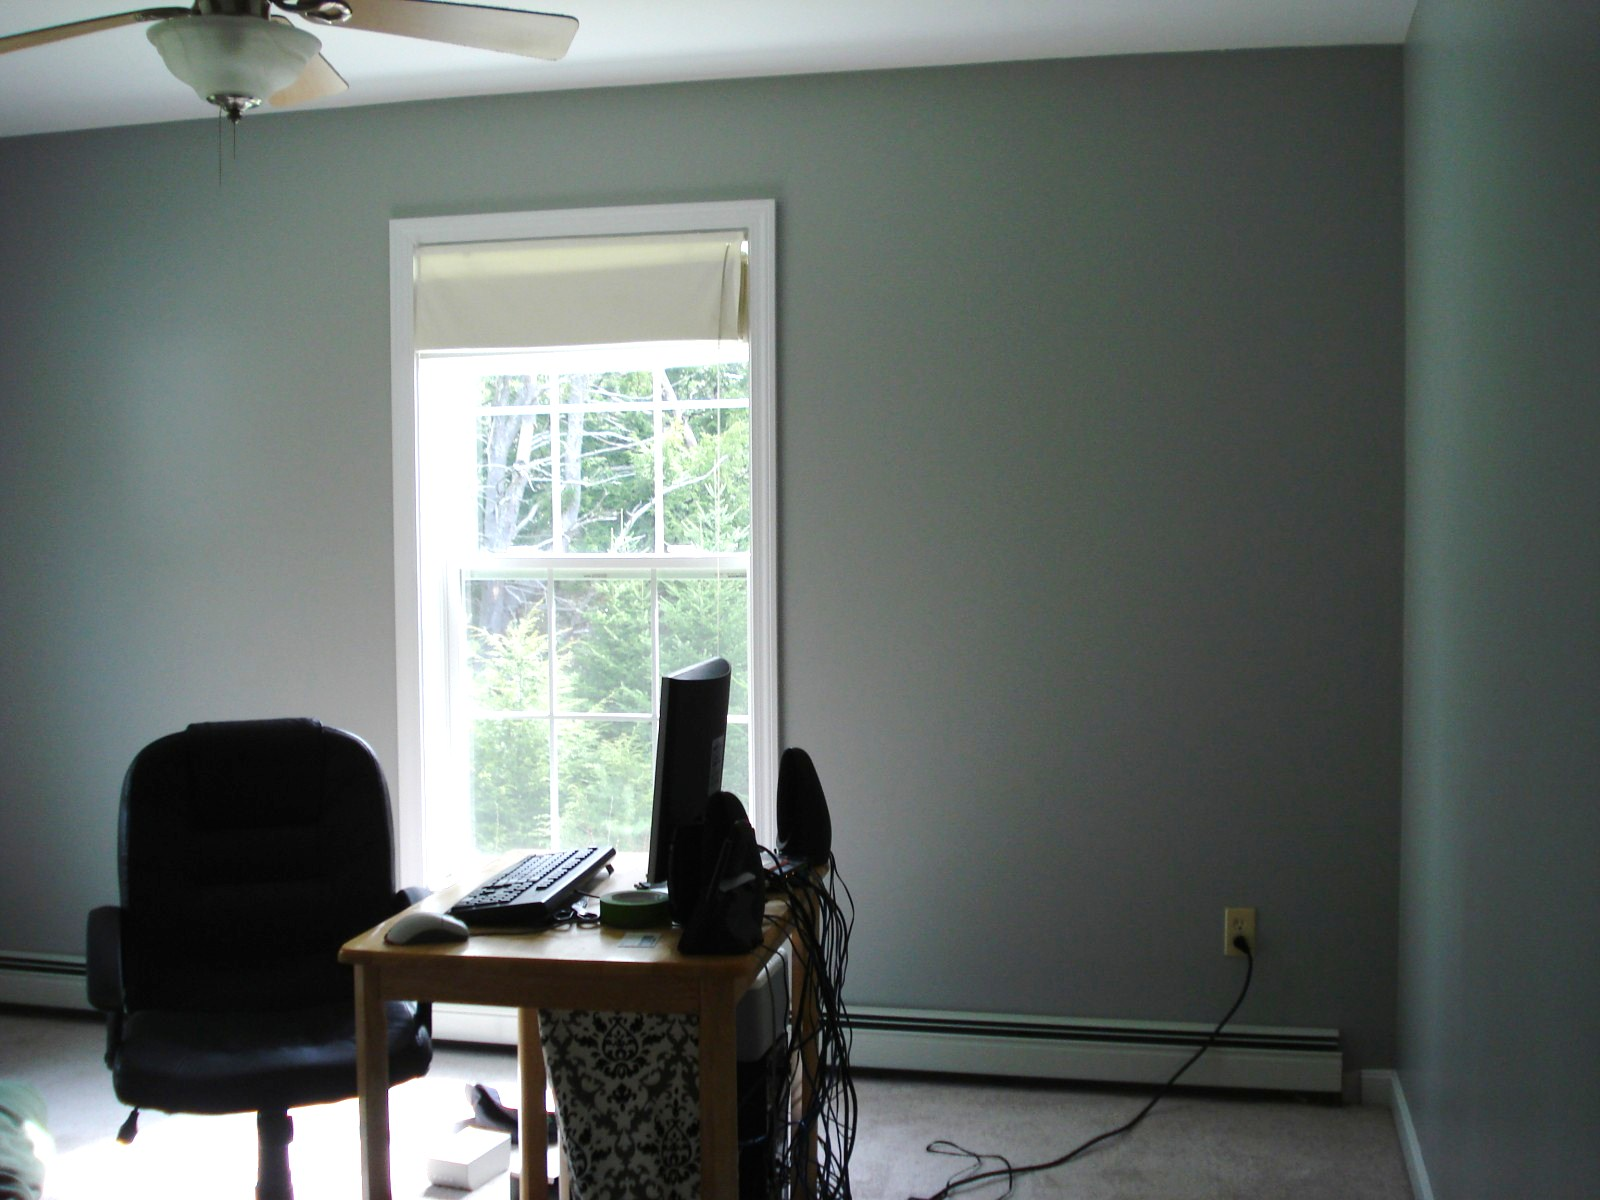 Revisiting The Office Paint Color